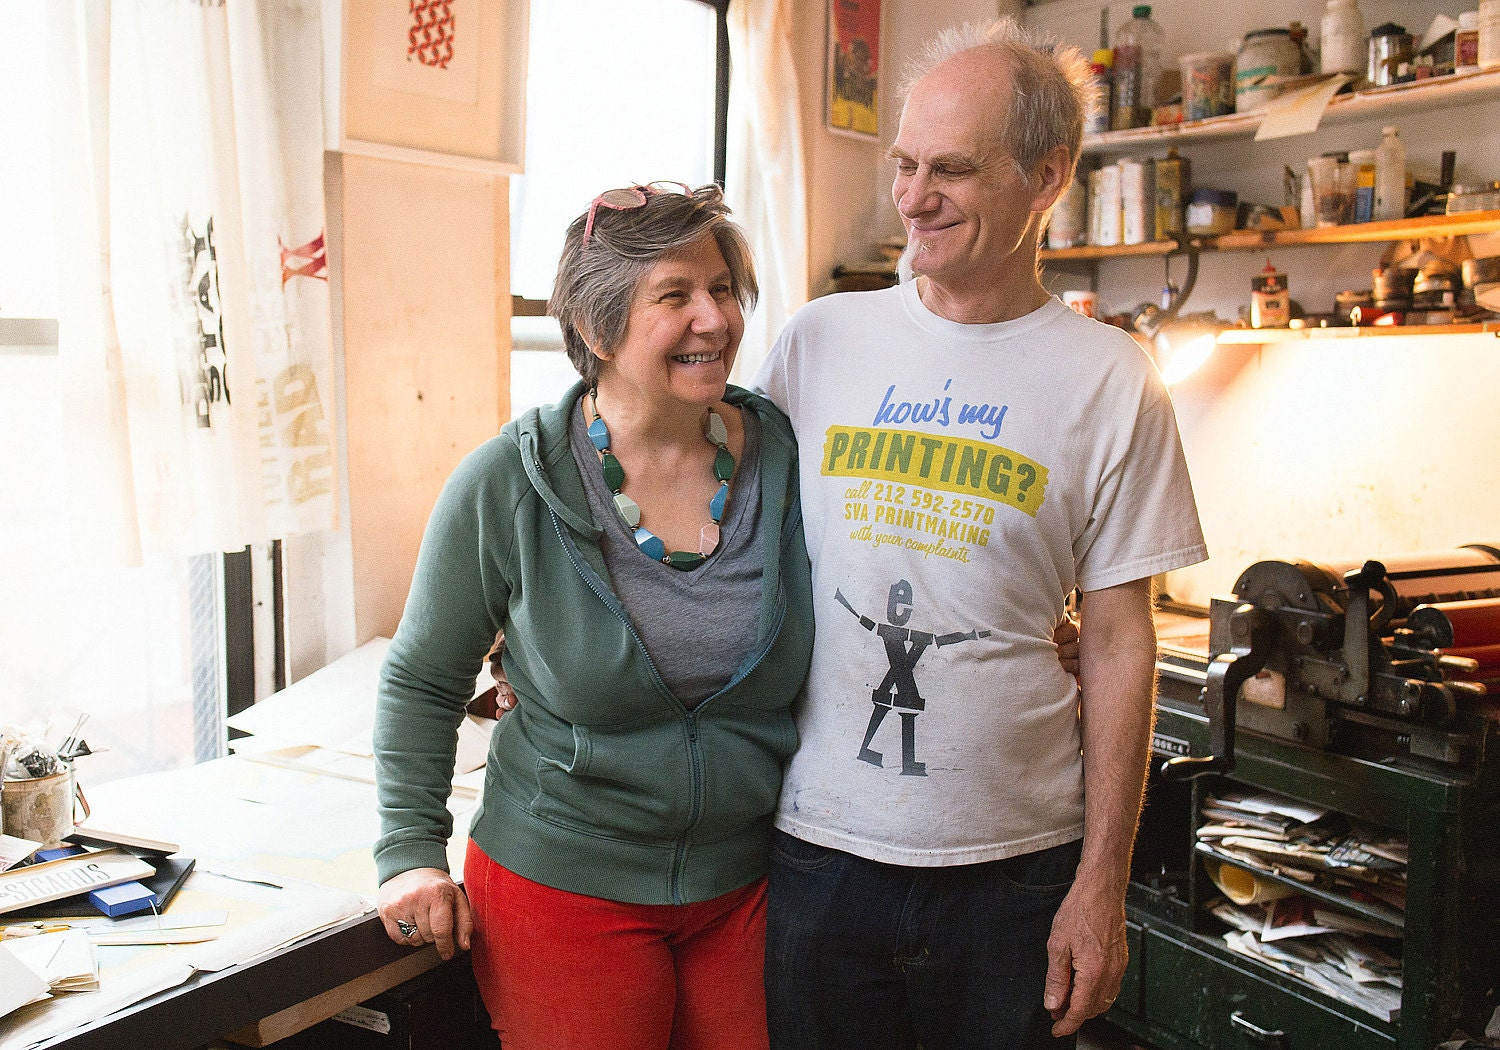 Esther K. Smith and Dikko Faust, owners of Purgatory Pie Press